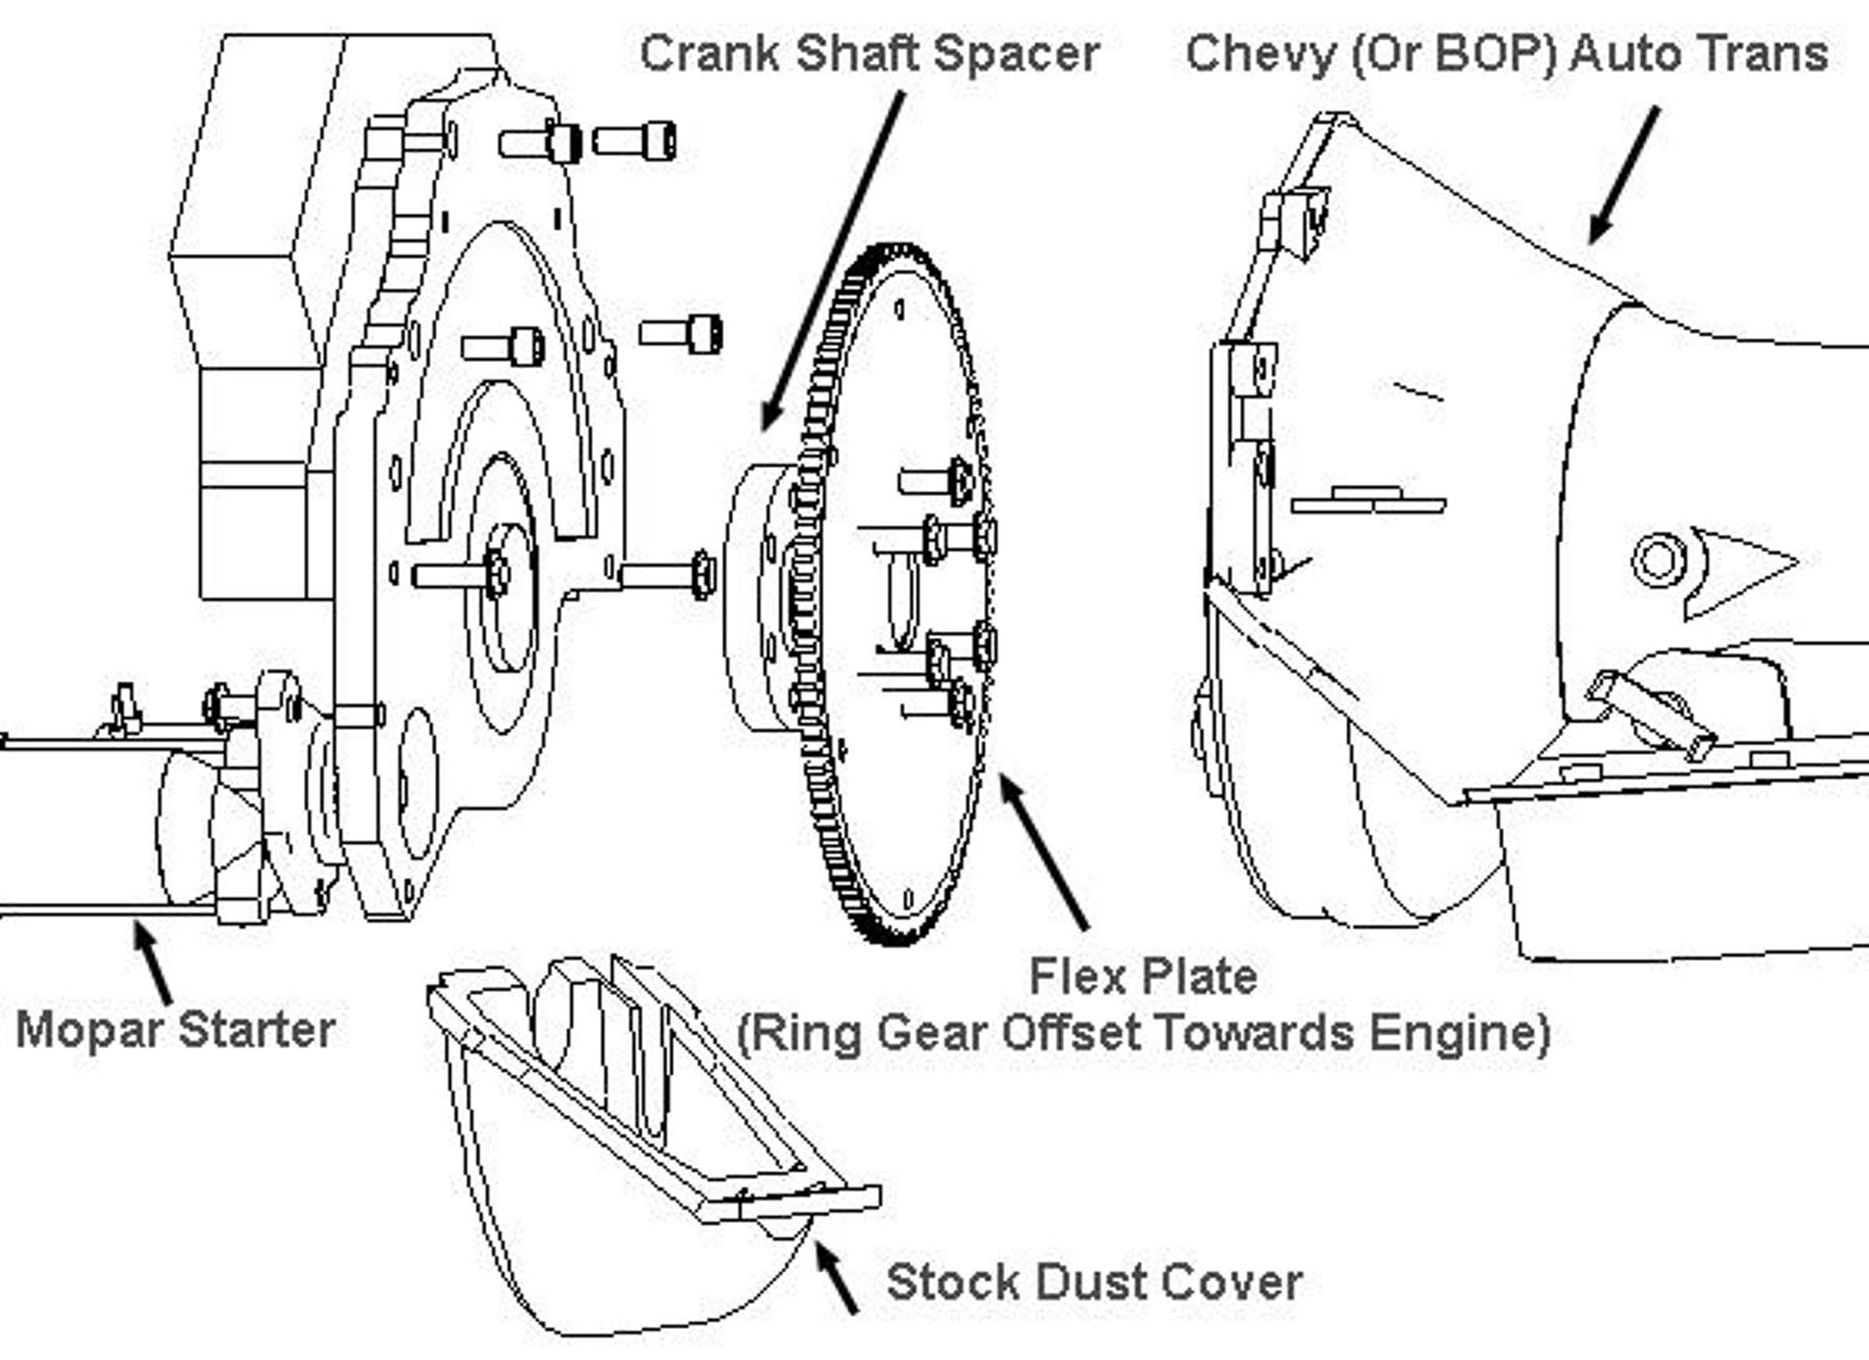 Chevy 700r4 Transmission Parts Diagram